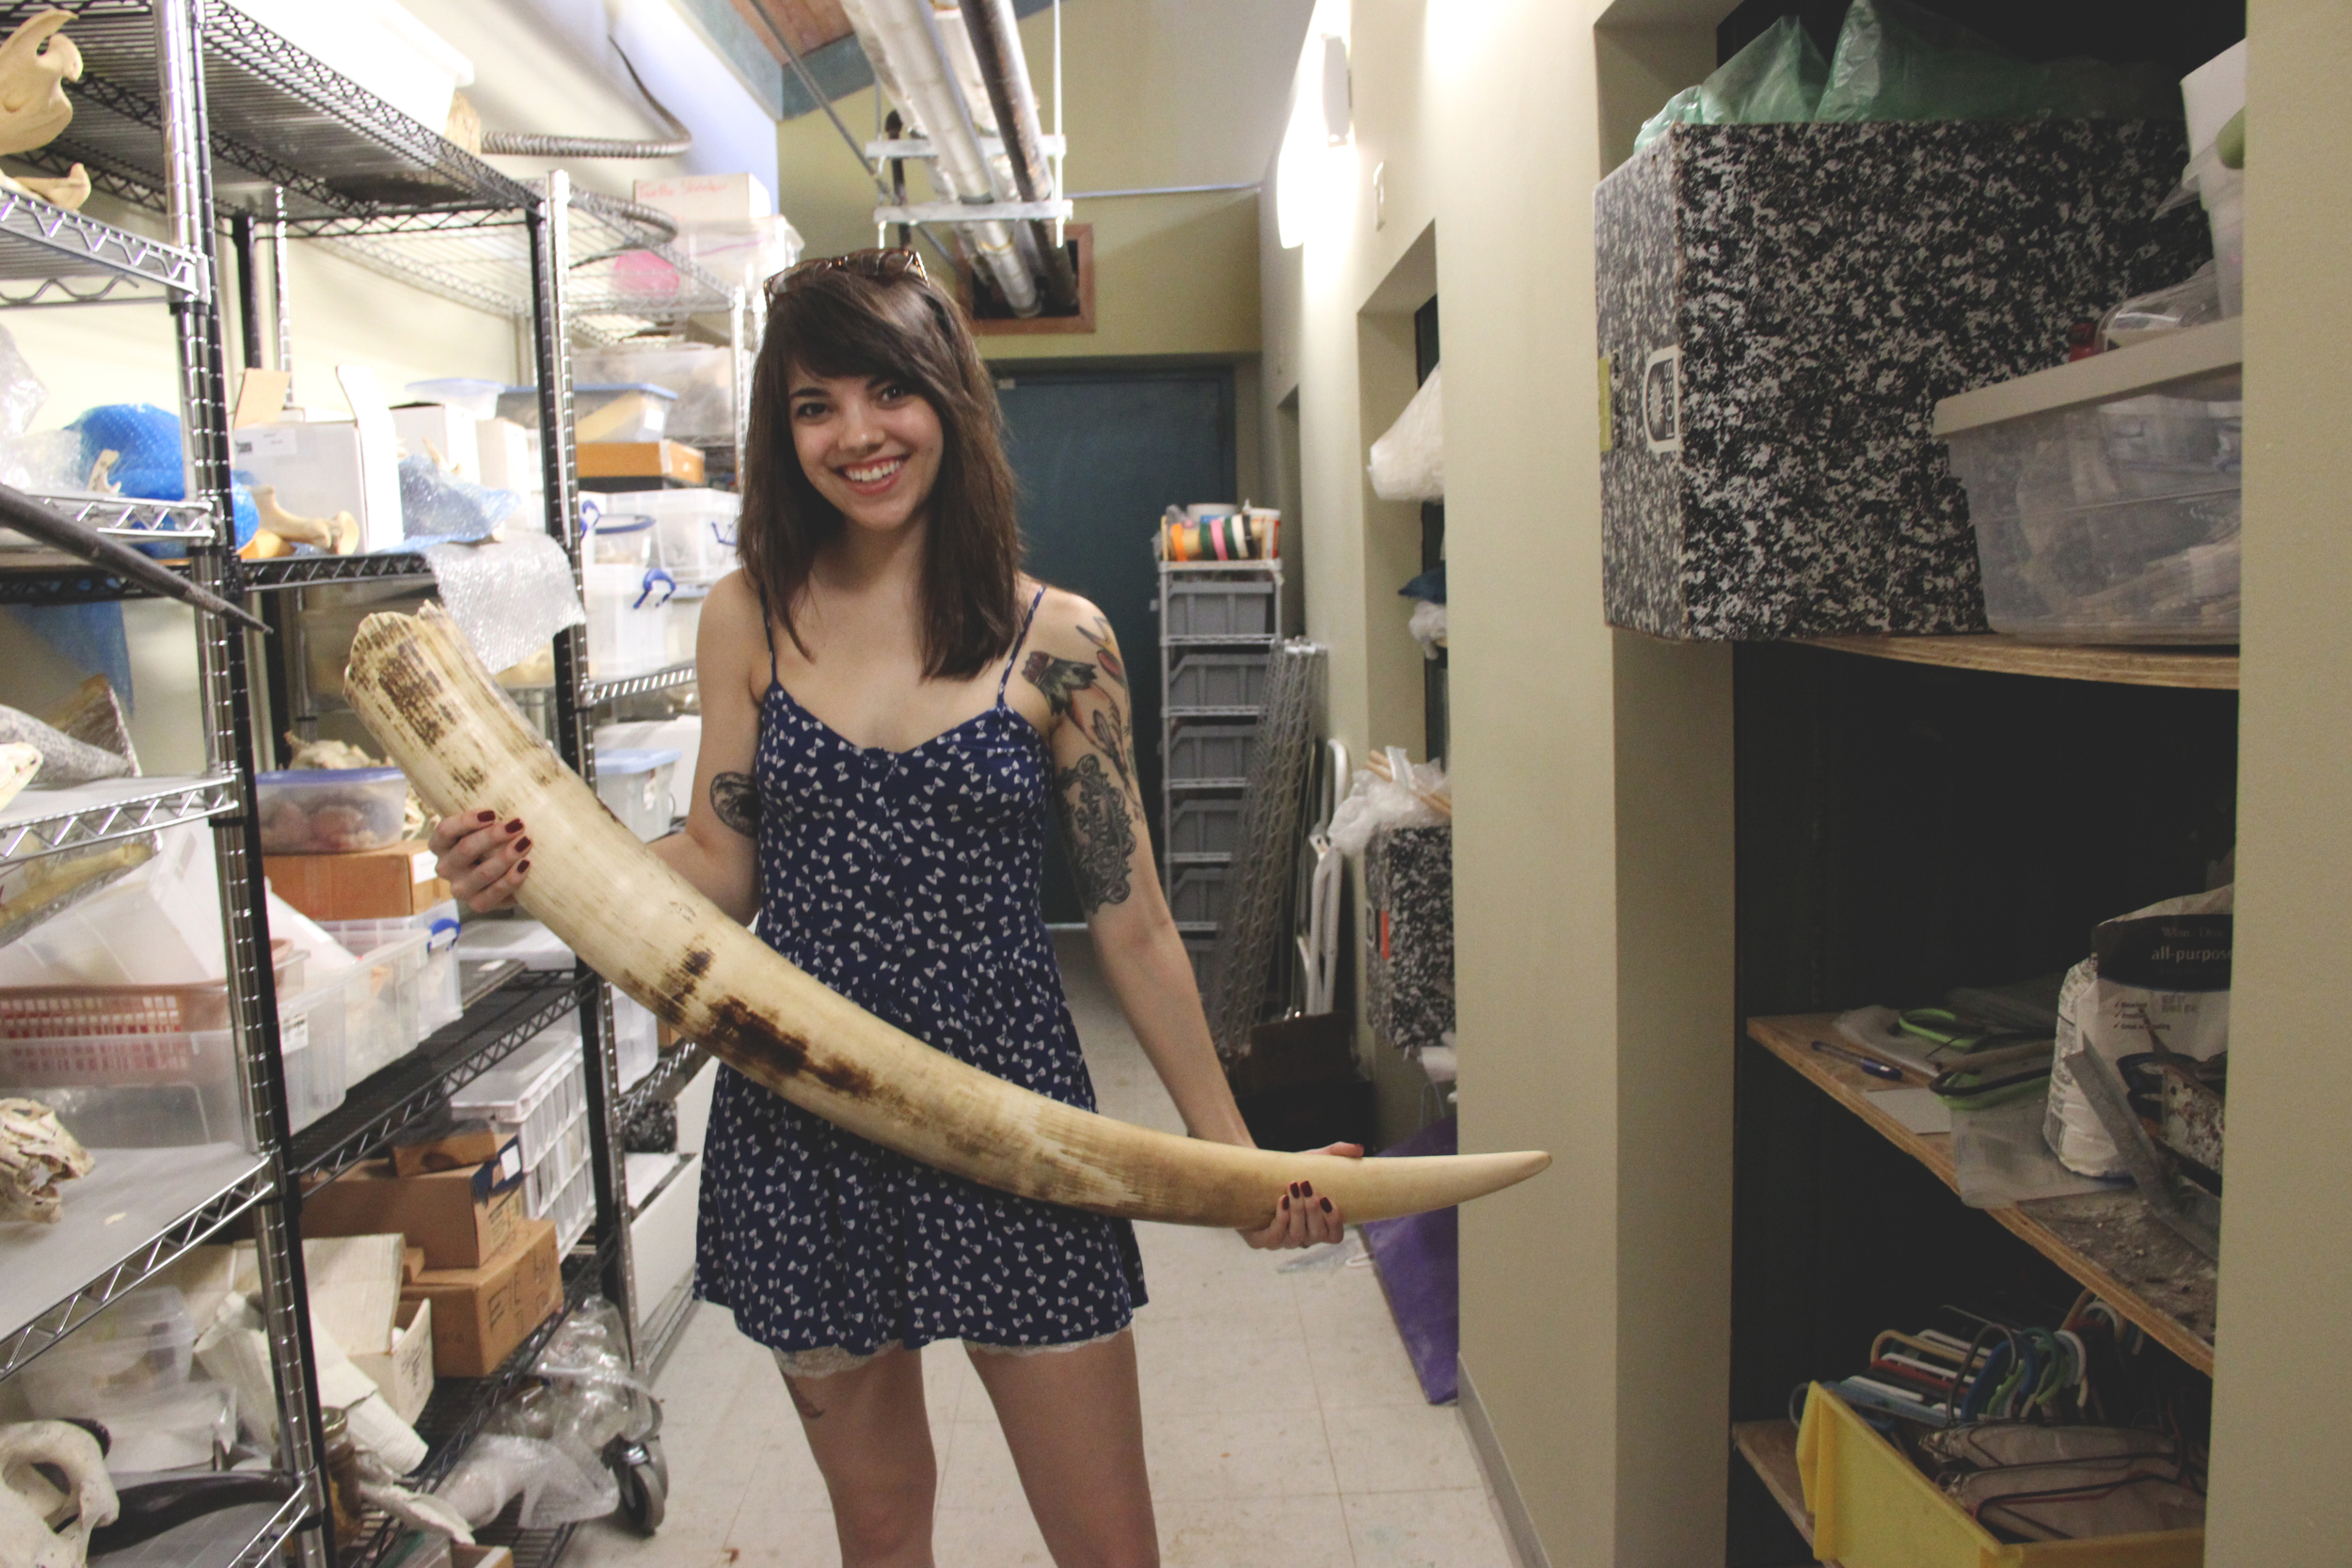 Posing with an elephant tusk in the educational archives of the Audubon Zoo - April 2014.